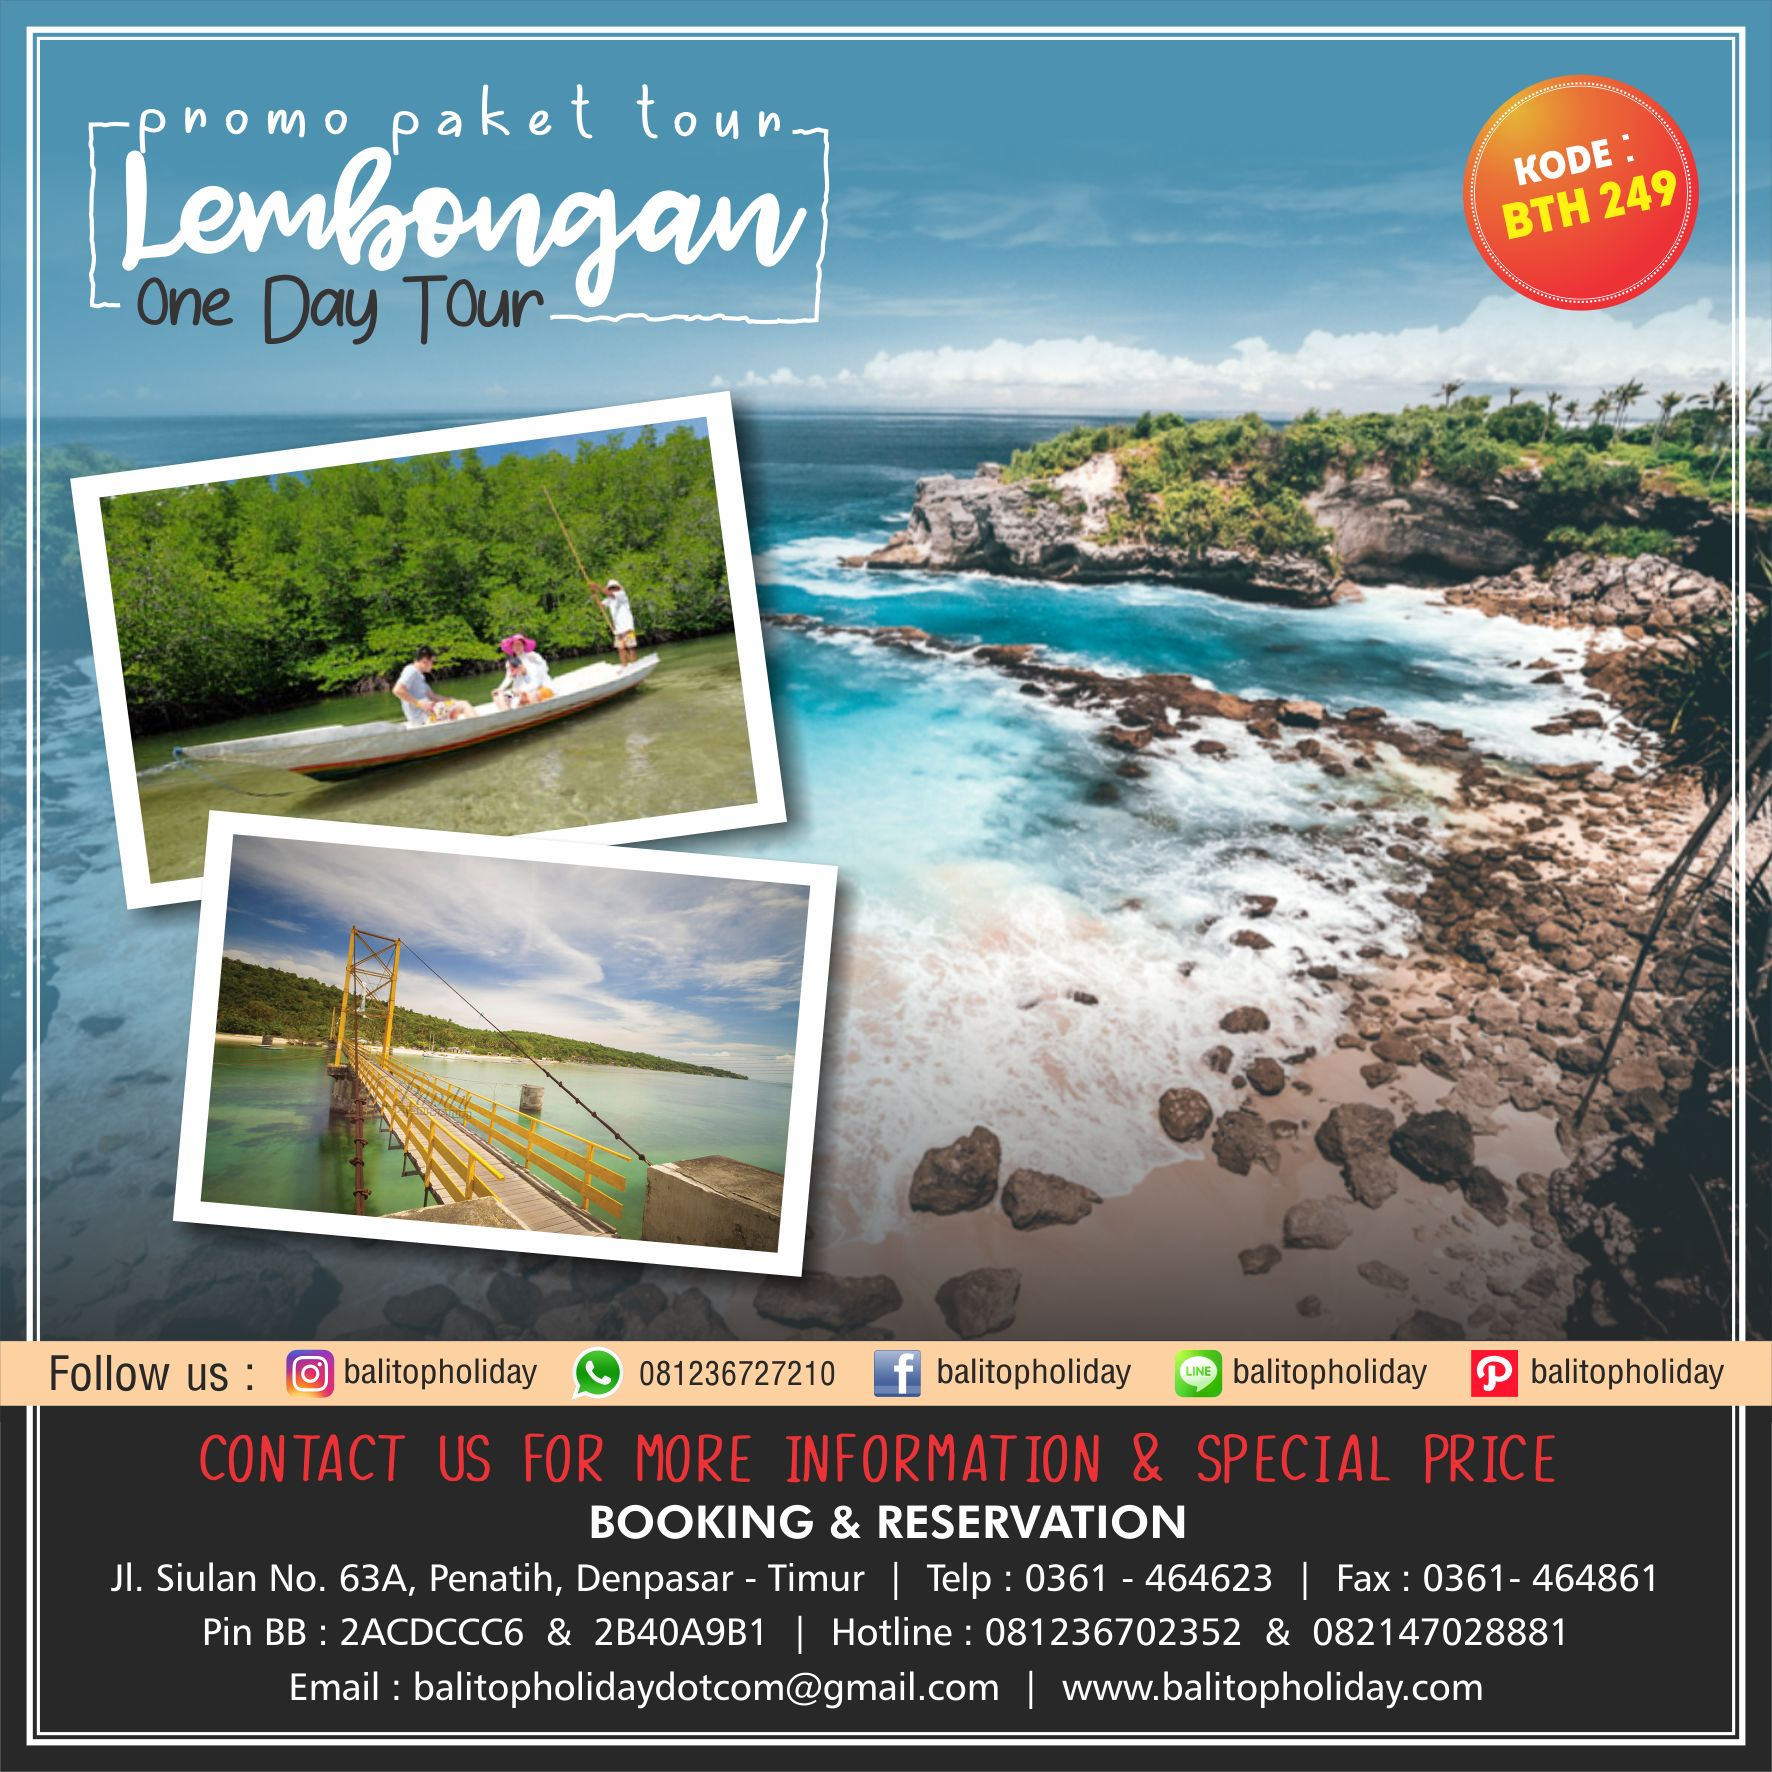 Lembongan One Day Tour BTH 249